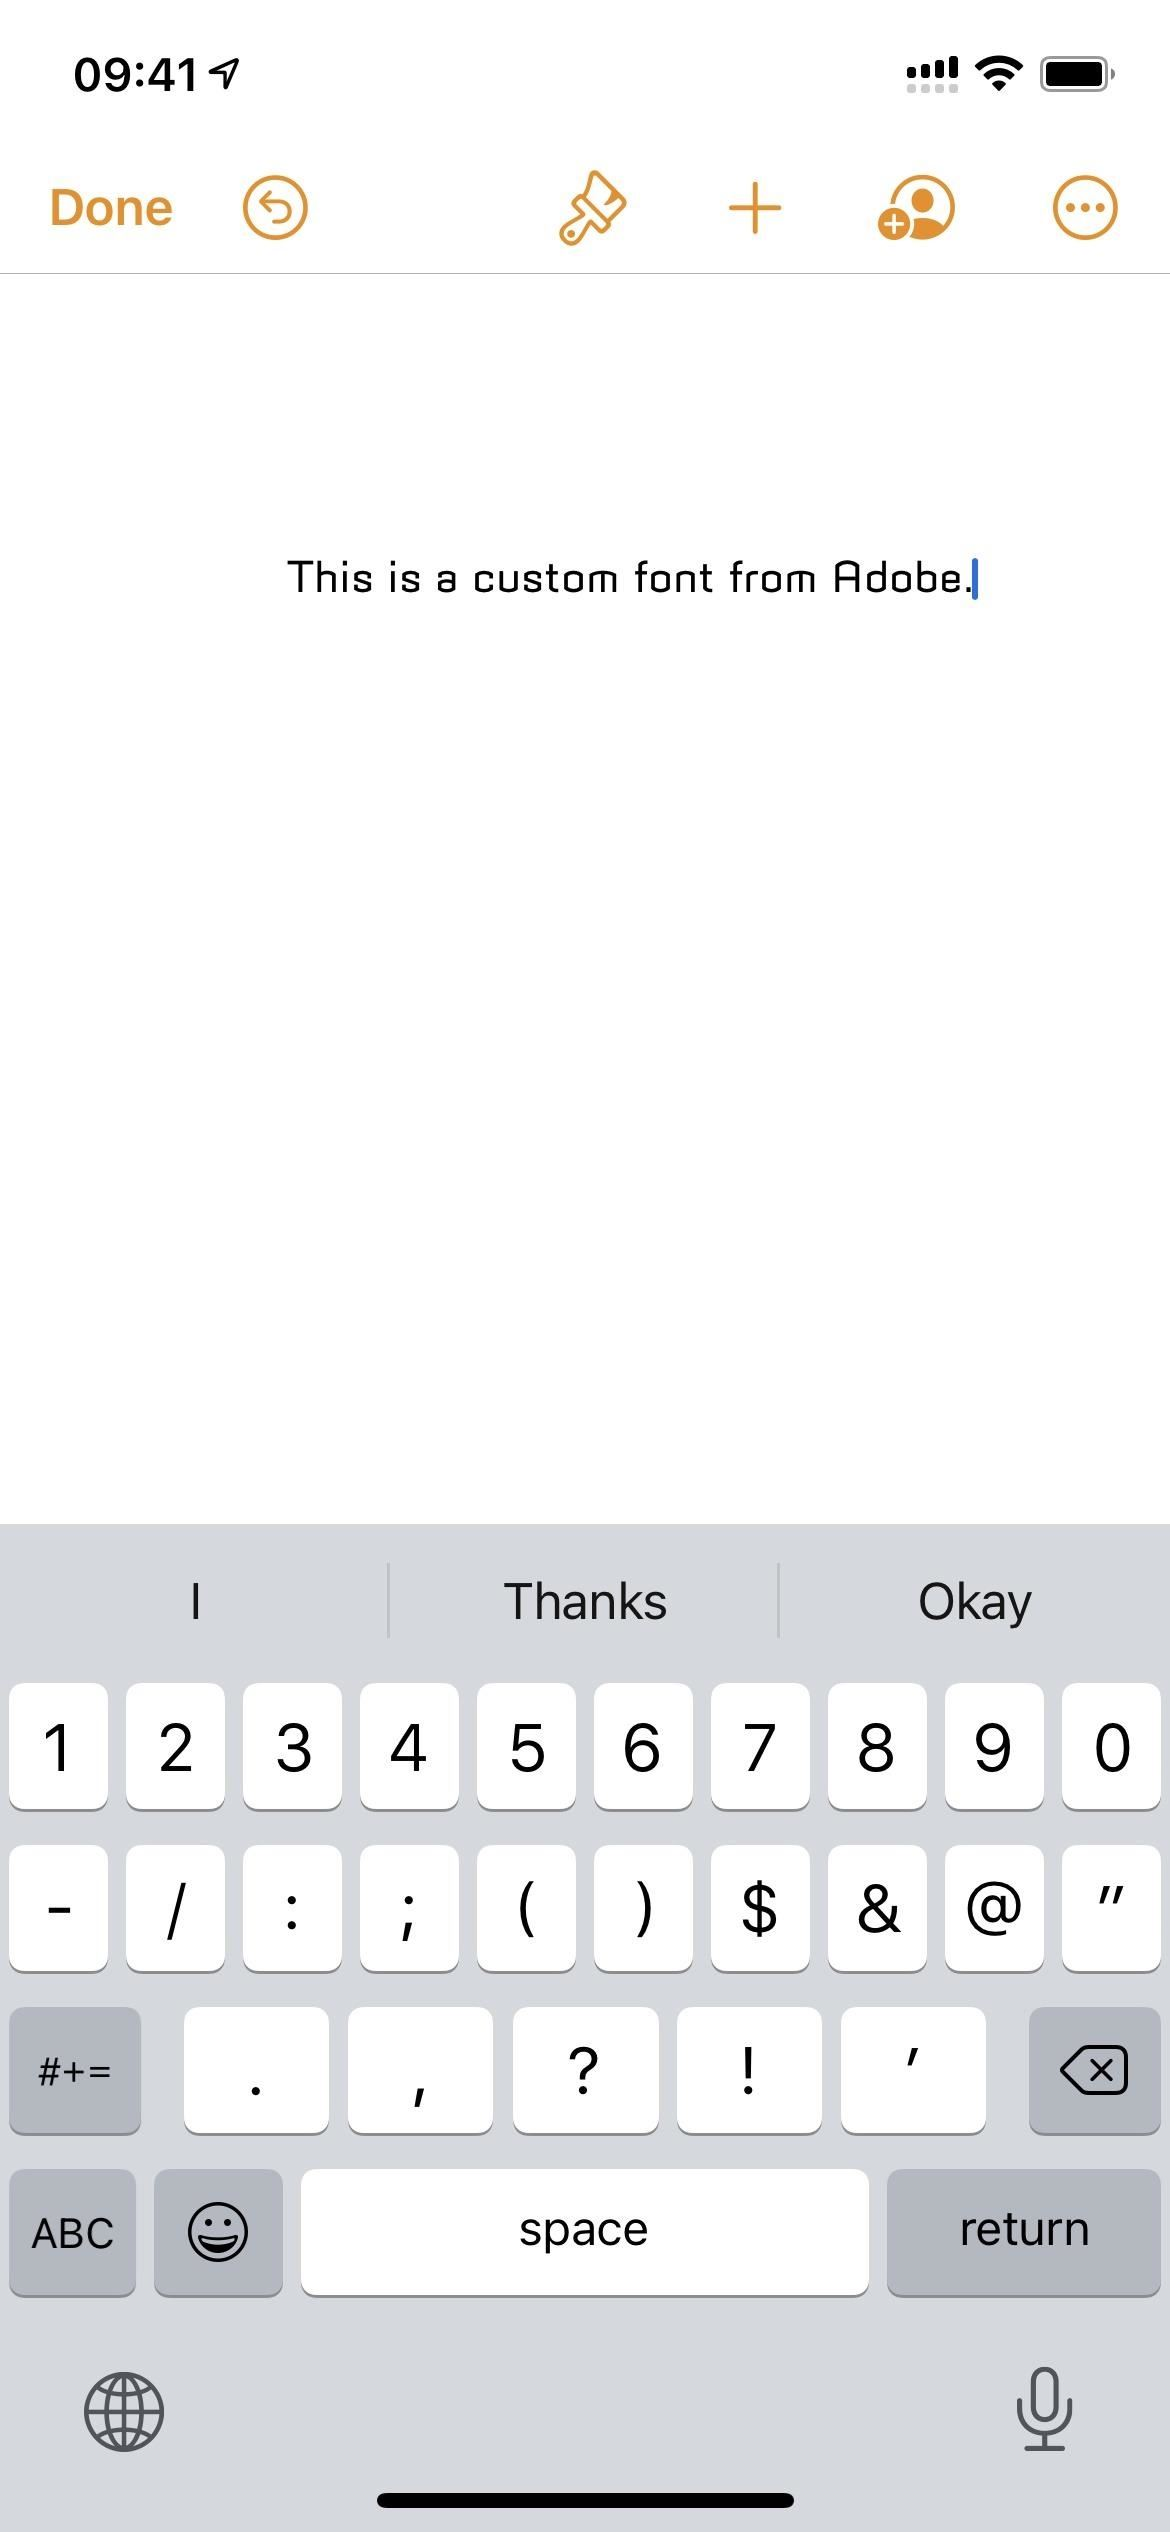 This App Gives You Thousands of Free Custom Fonts for Your iPhone's Stock Keyboard